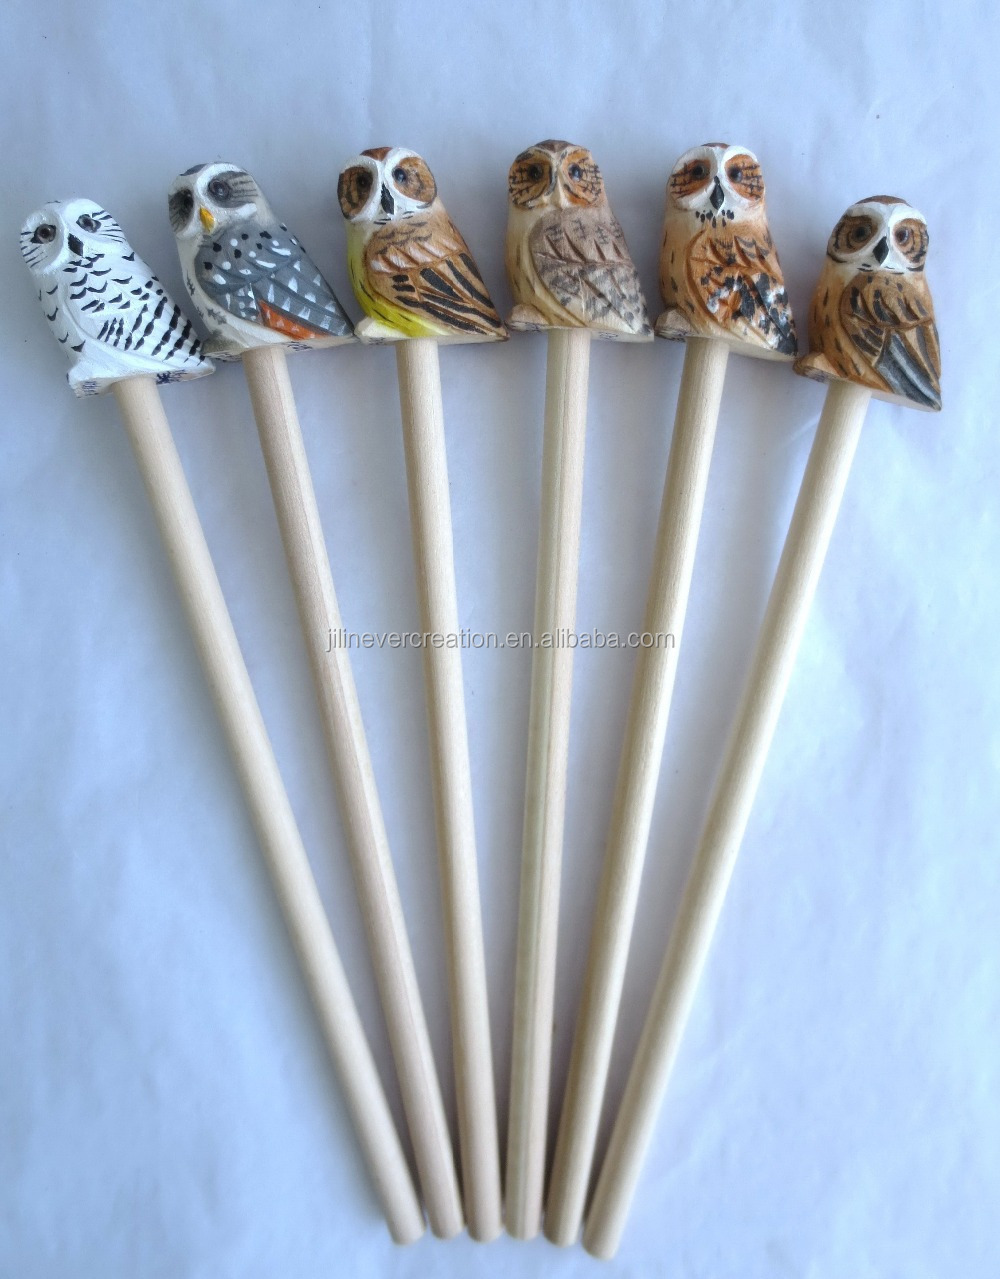 Promotional wood carved pencil cute design wooden